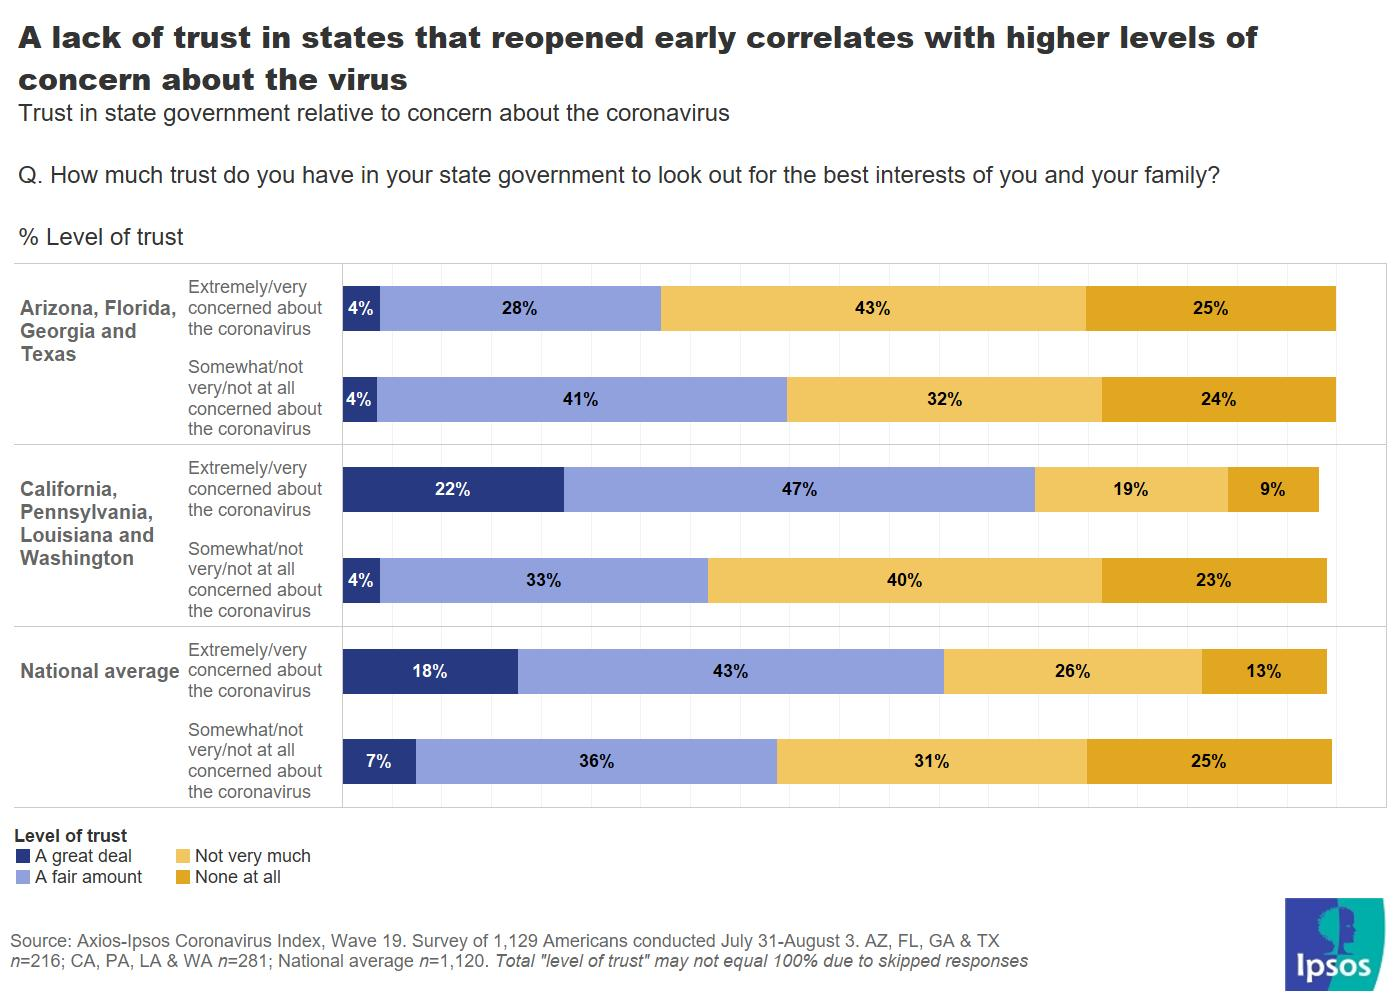 Trust in state relative to concern